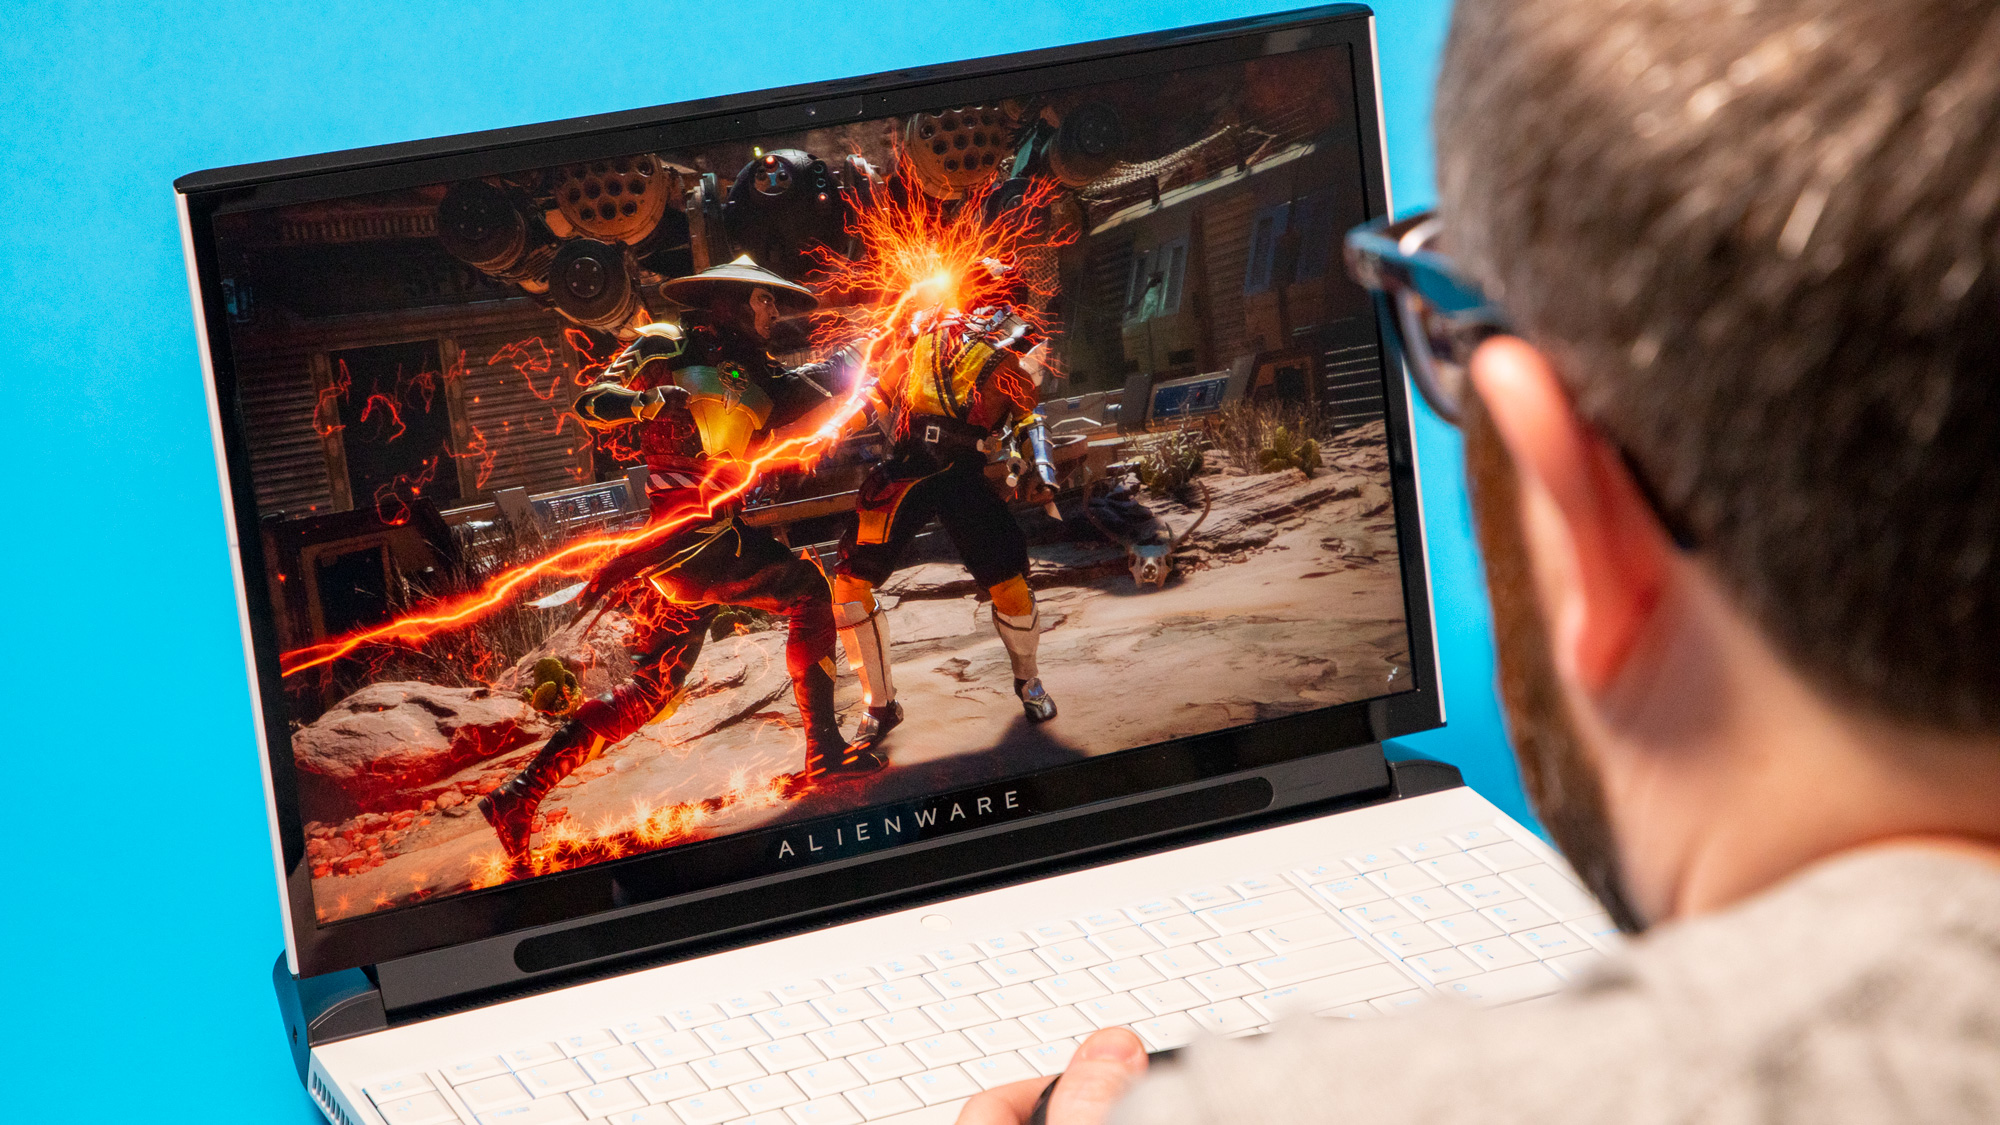 Best 17-inch laptop: Alienware Area-51m